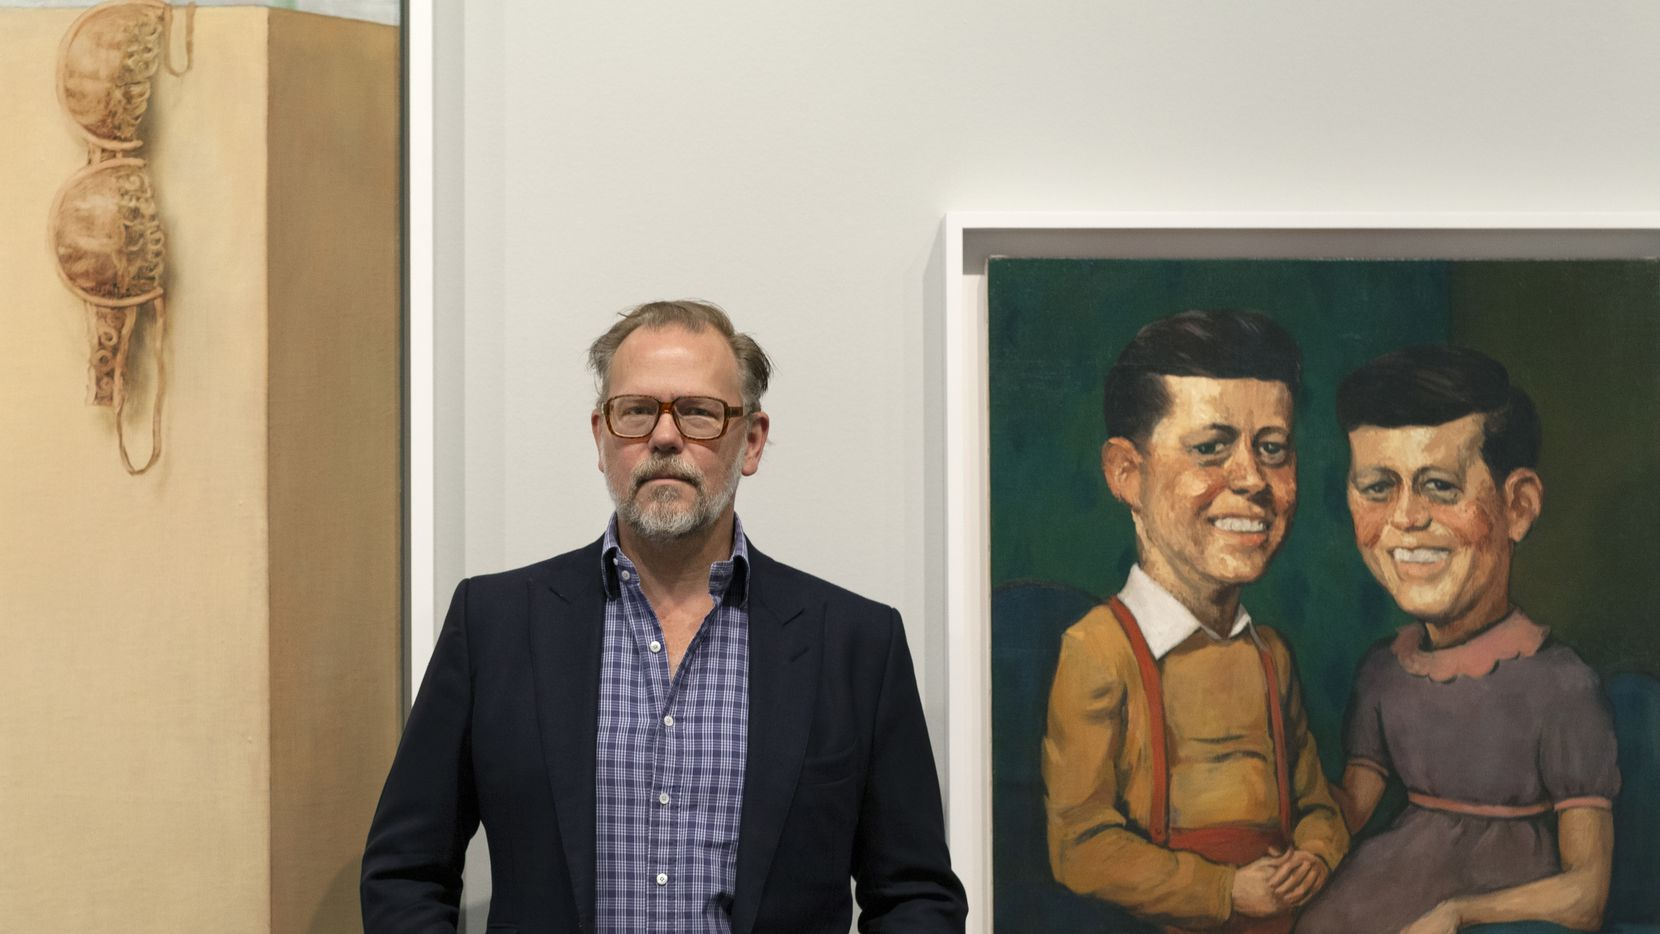 "Artist John Currin, photographed at his exhibition ""My Life as a Man"" at the Dallas Contemporary. He is flanked by his works ""The Kennedys"", with two images of John F. Kennedy (right), and a detail of ""The Dream of the Doctor"" (left)."